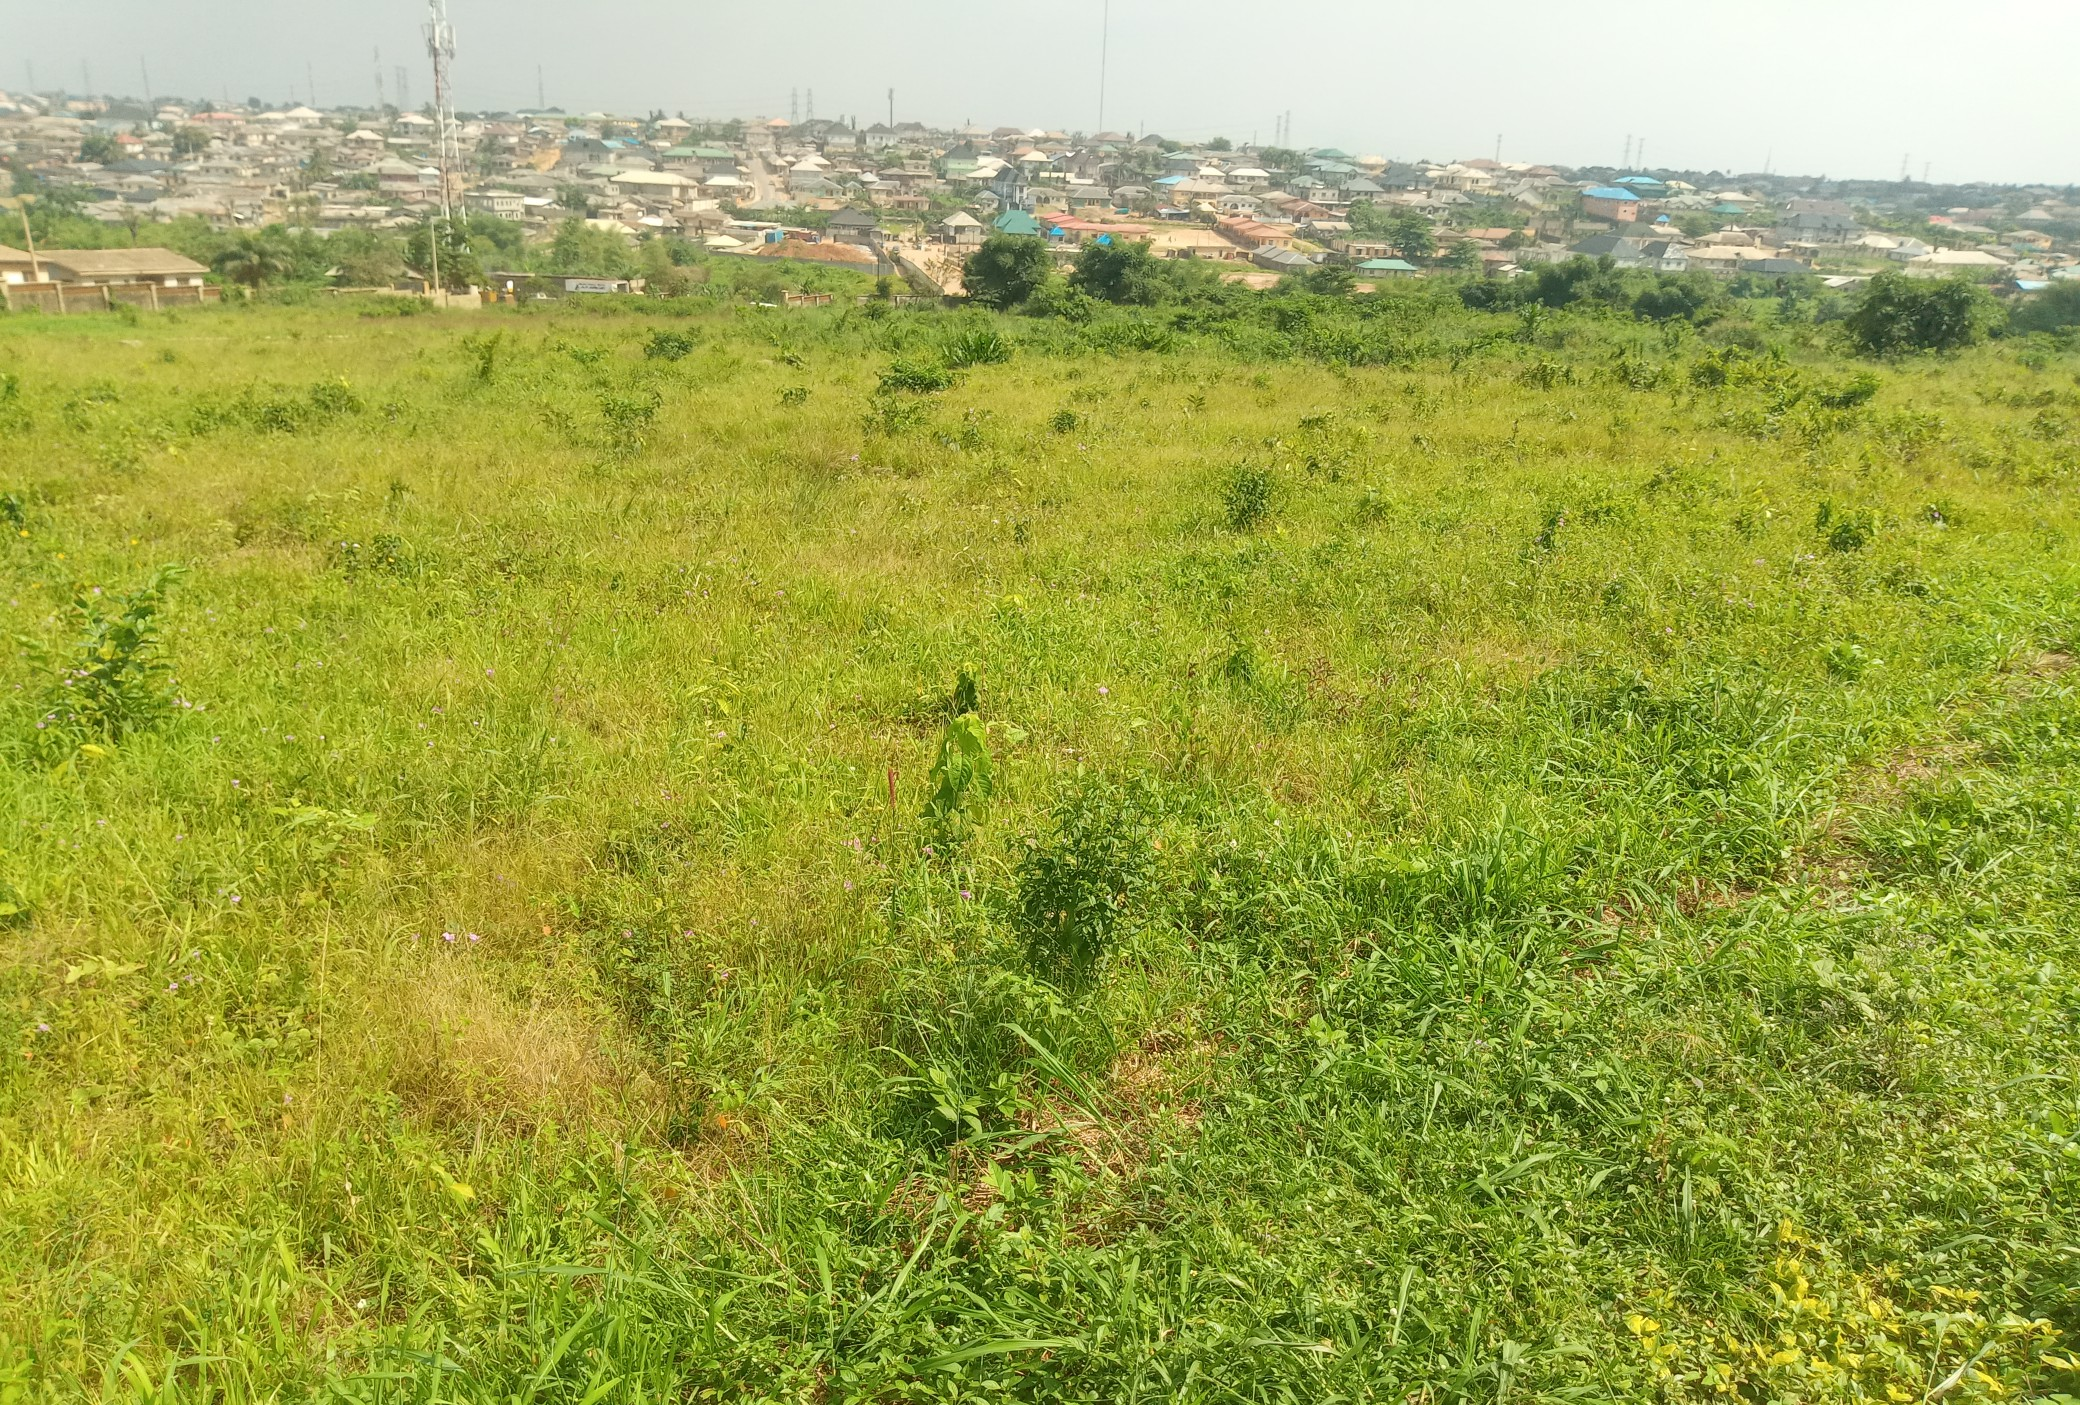 Half plot of land at okeshagun estate, ipaja ayobo area,  Lagos State for sale.